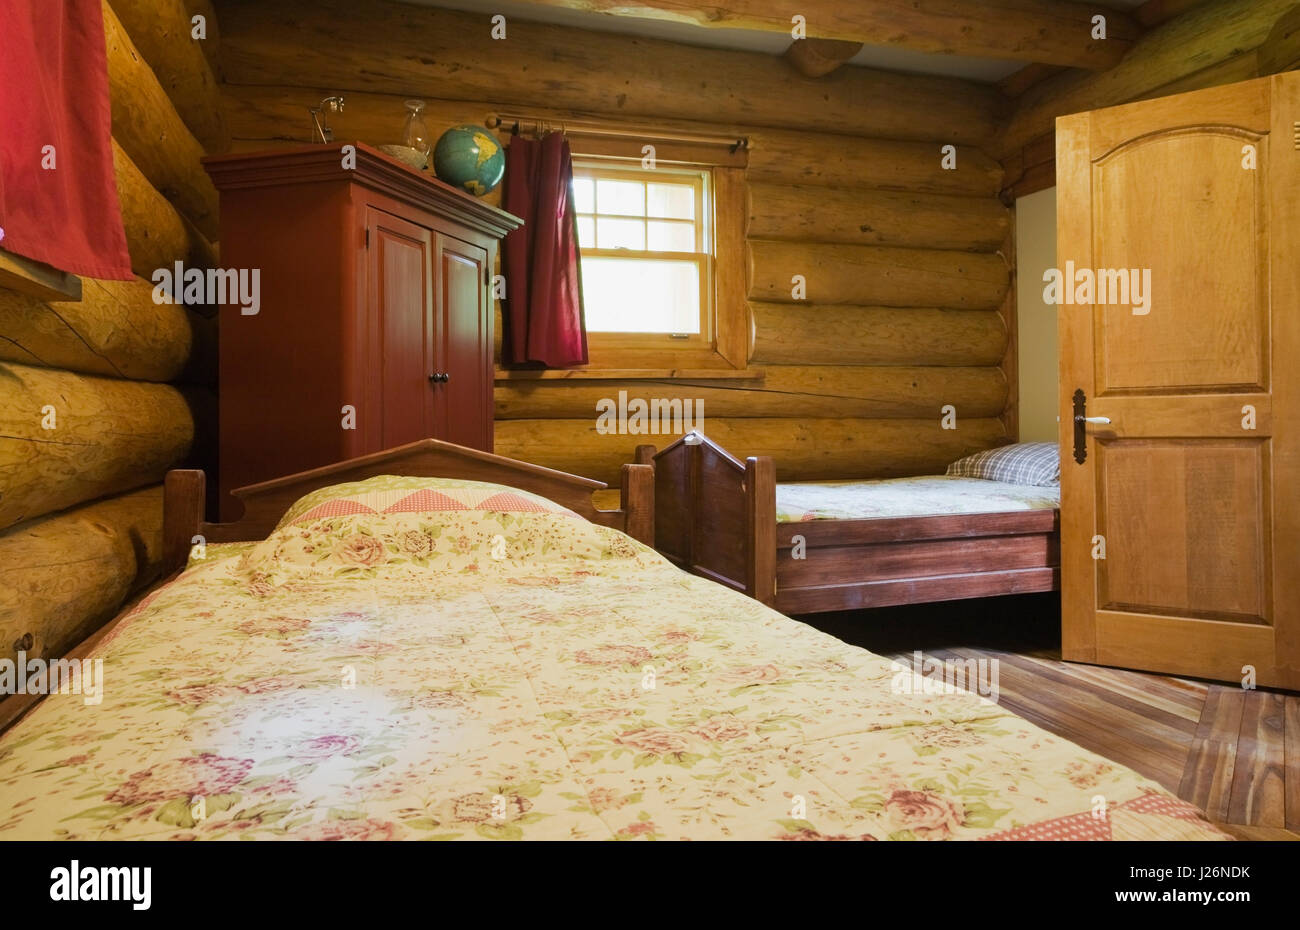 Guest bedroom inside a 2003 built cottage style residential log home - Stock Image